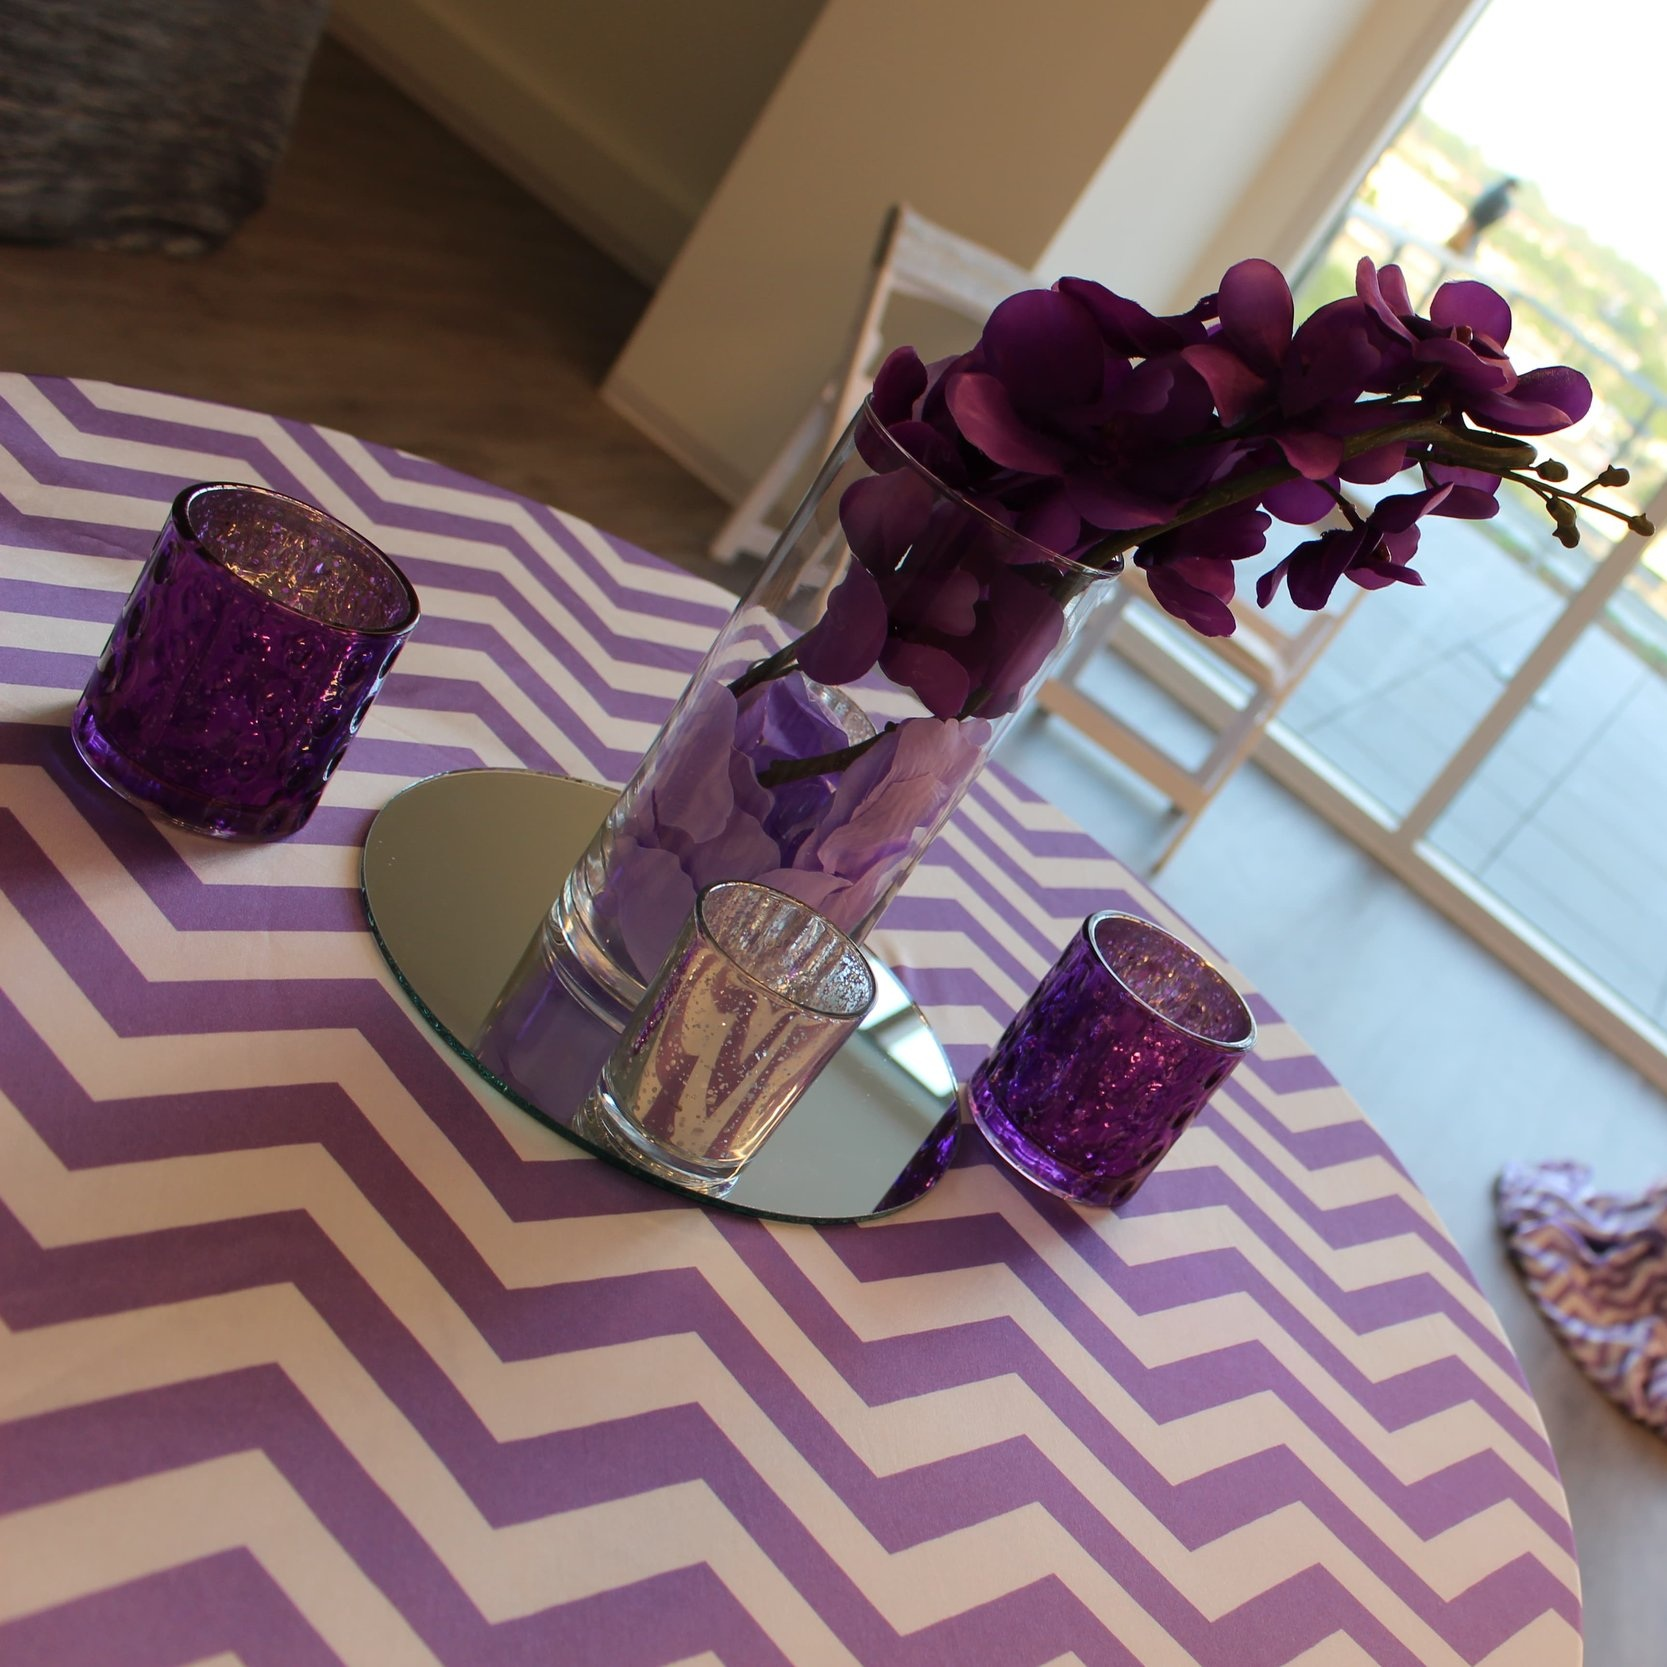 MERCURY GLASS VOTIVE HOLDERS   Colors available: Gold, Silver, Fuchsia, Royal Blue, Red, Royal Purple, Black Lace.    Contact us for pricing & availability